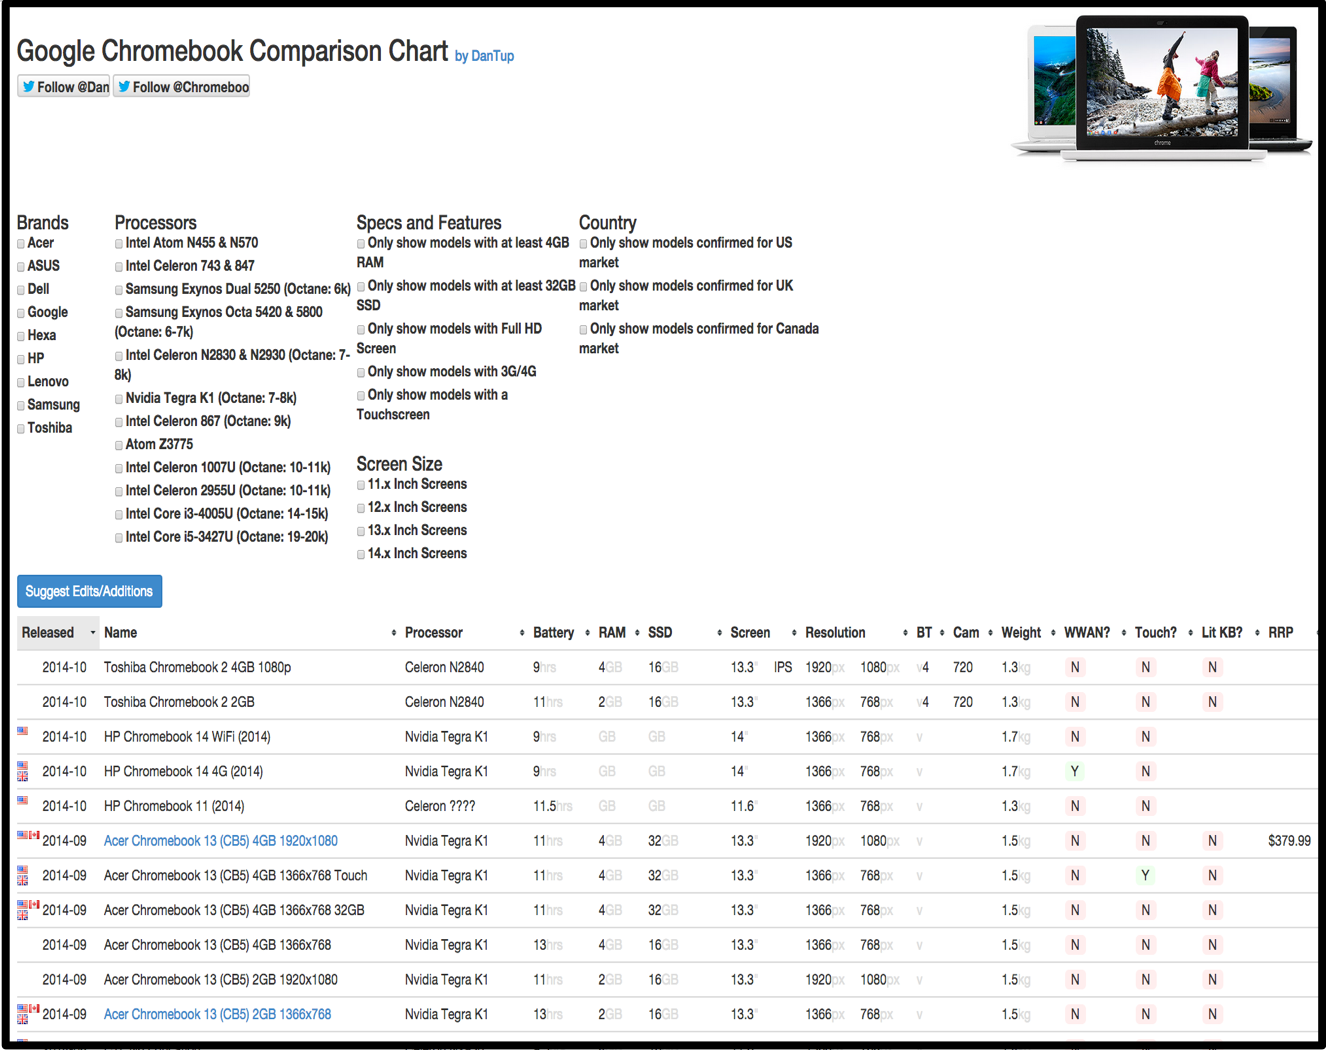 Awesome chromebook comparison chart for schools and teachers these variables include brand processors specs and features like ram or touchscreens screen size country wise availability battery weight and more nvjuhfo Choice Image